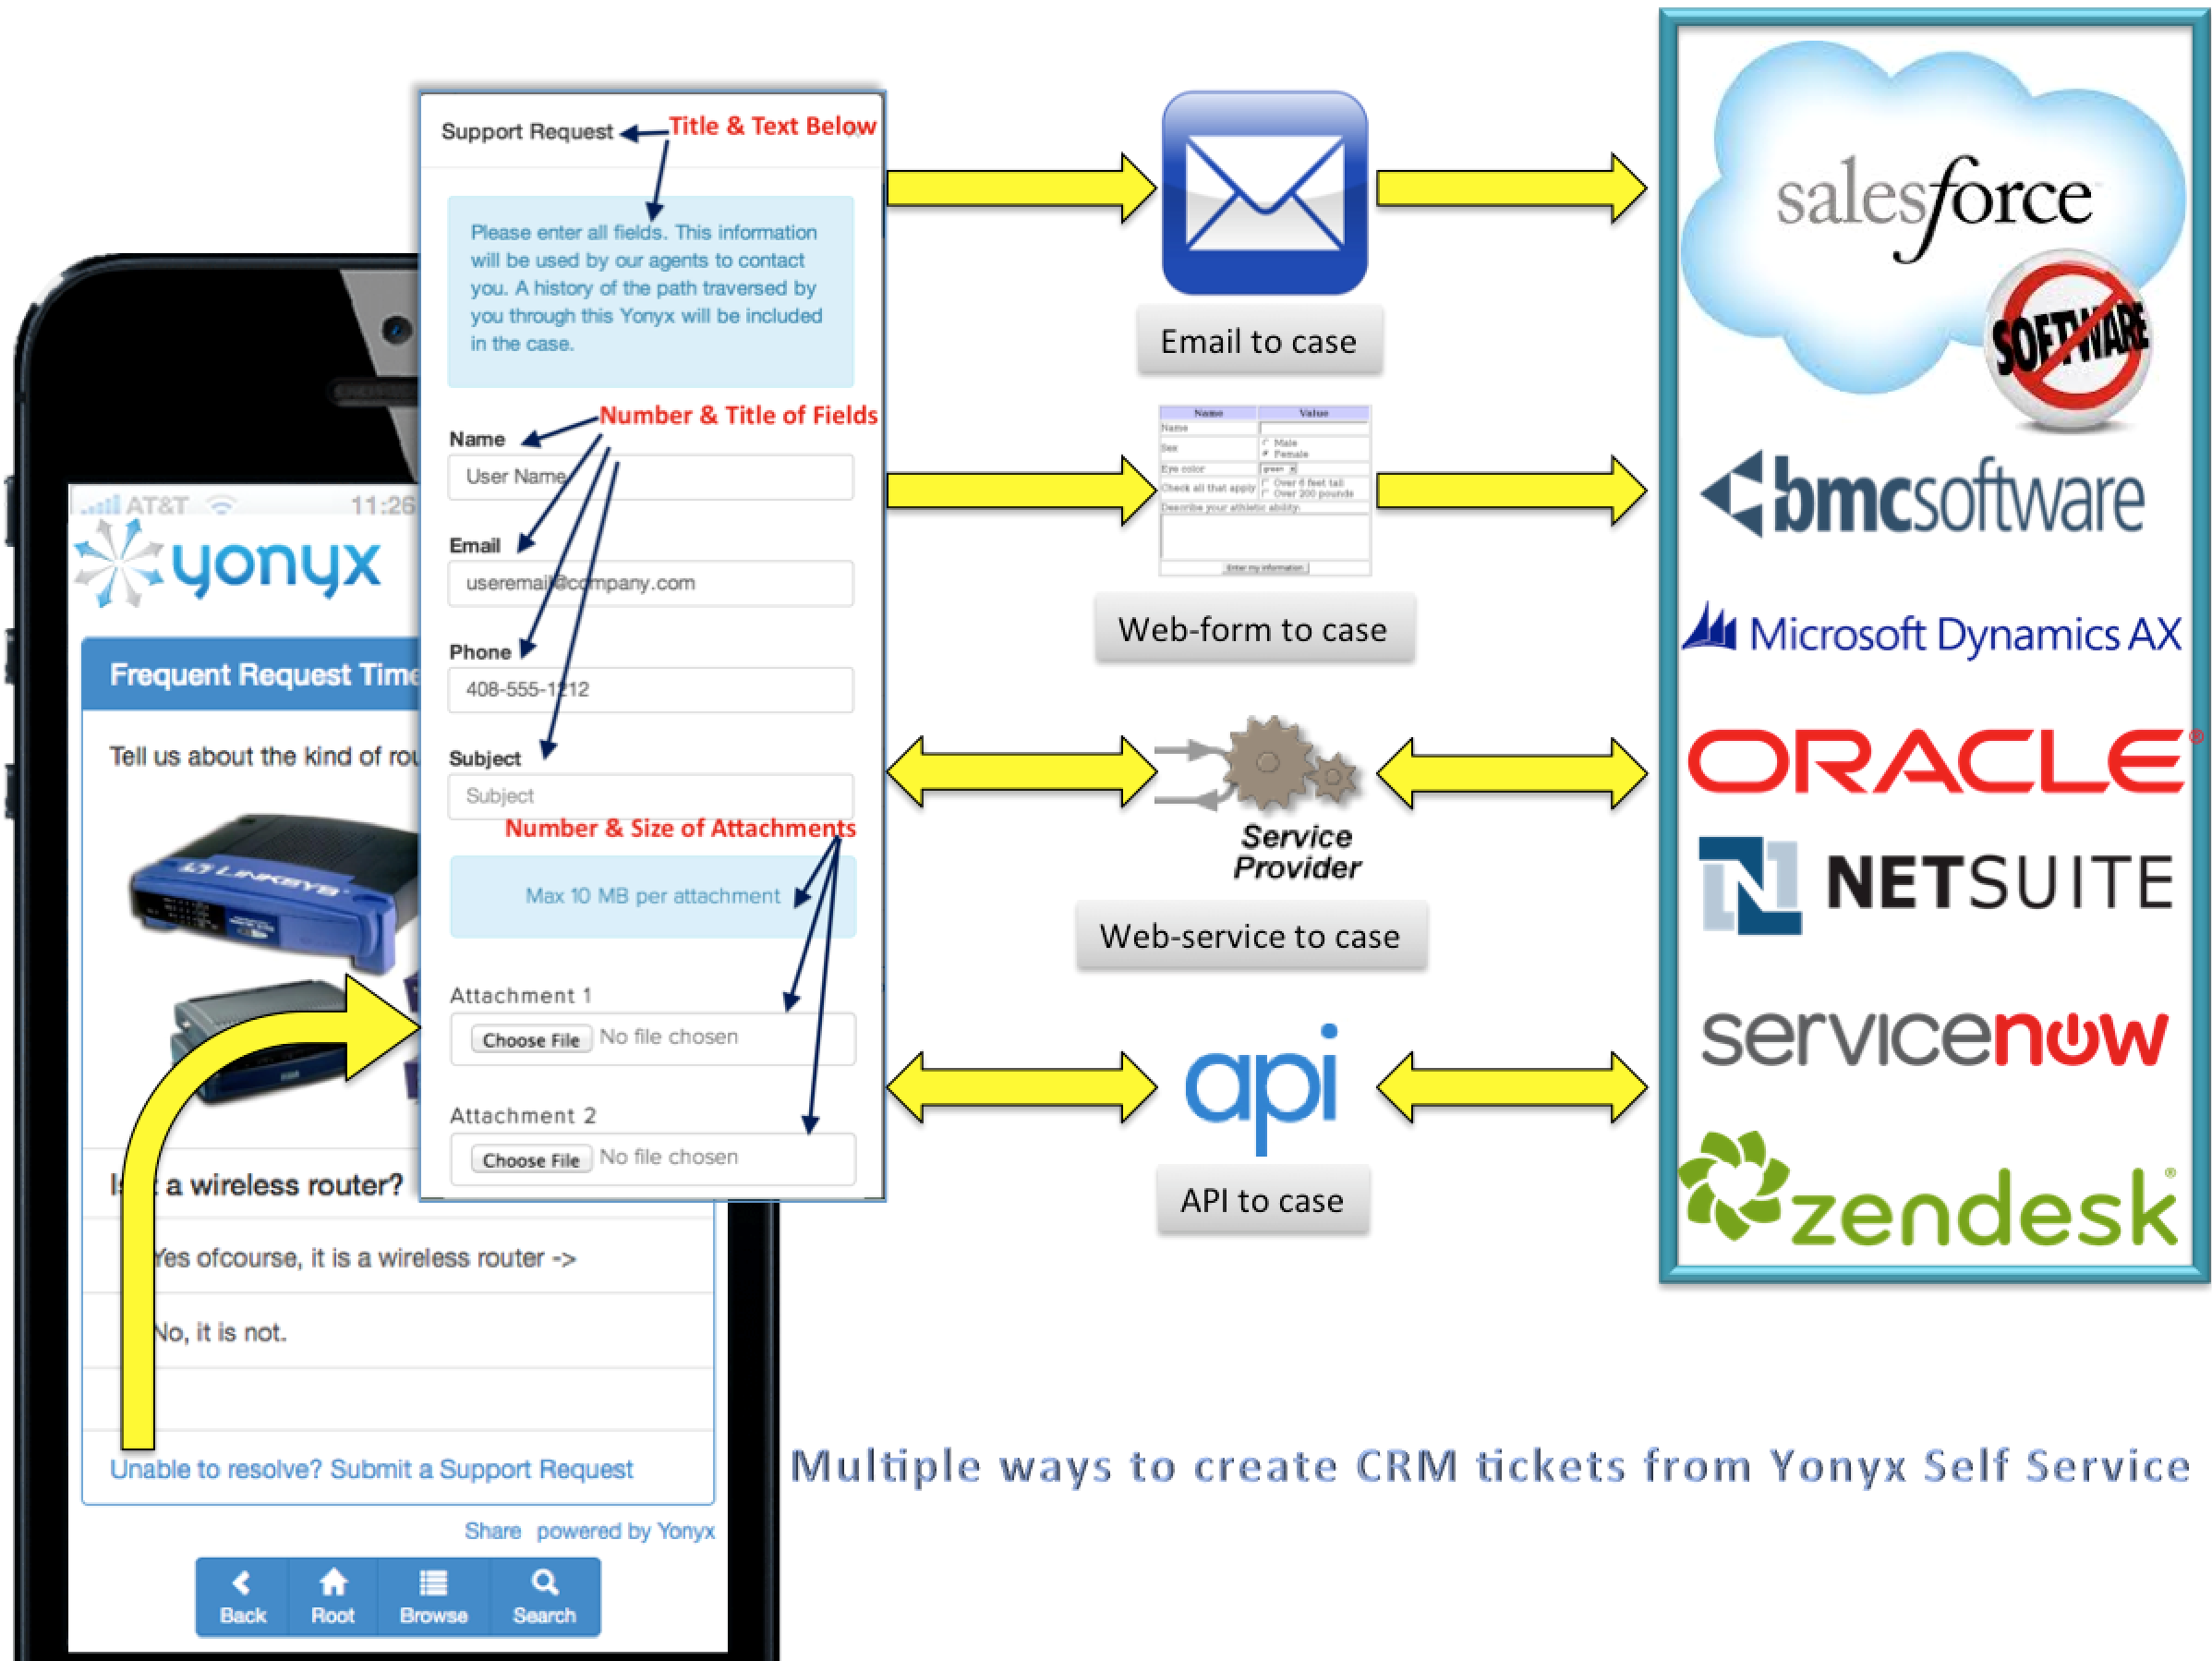 remedyforce solutions help desk bmc infographic itsm vs other blogs remedy